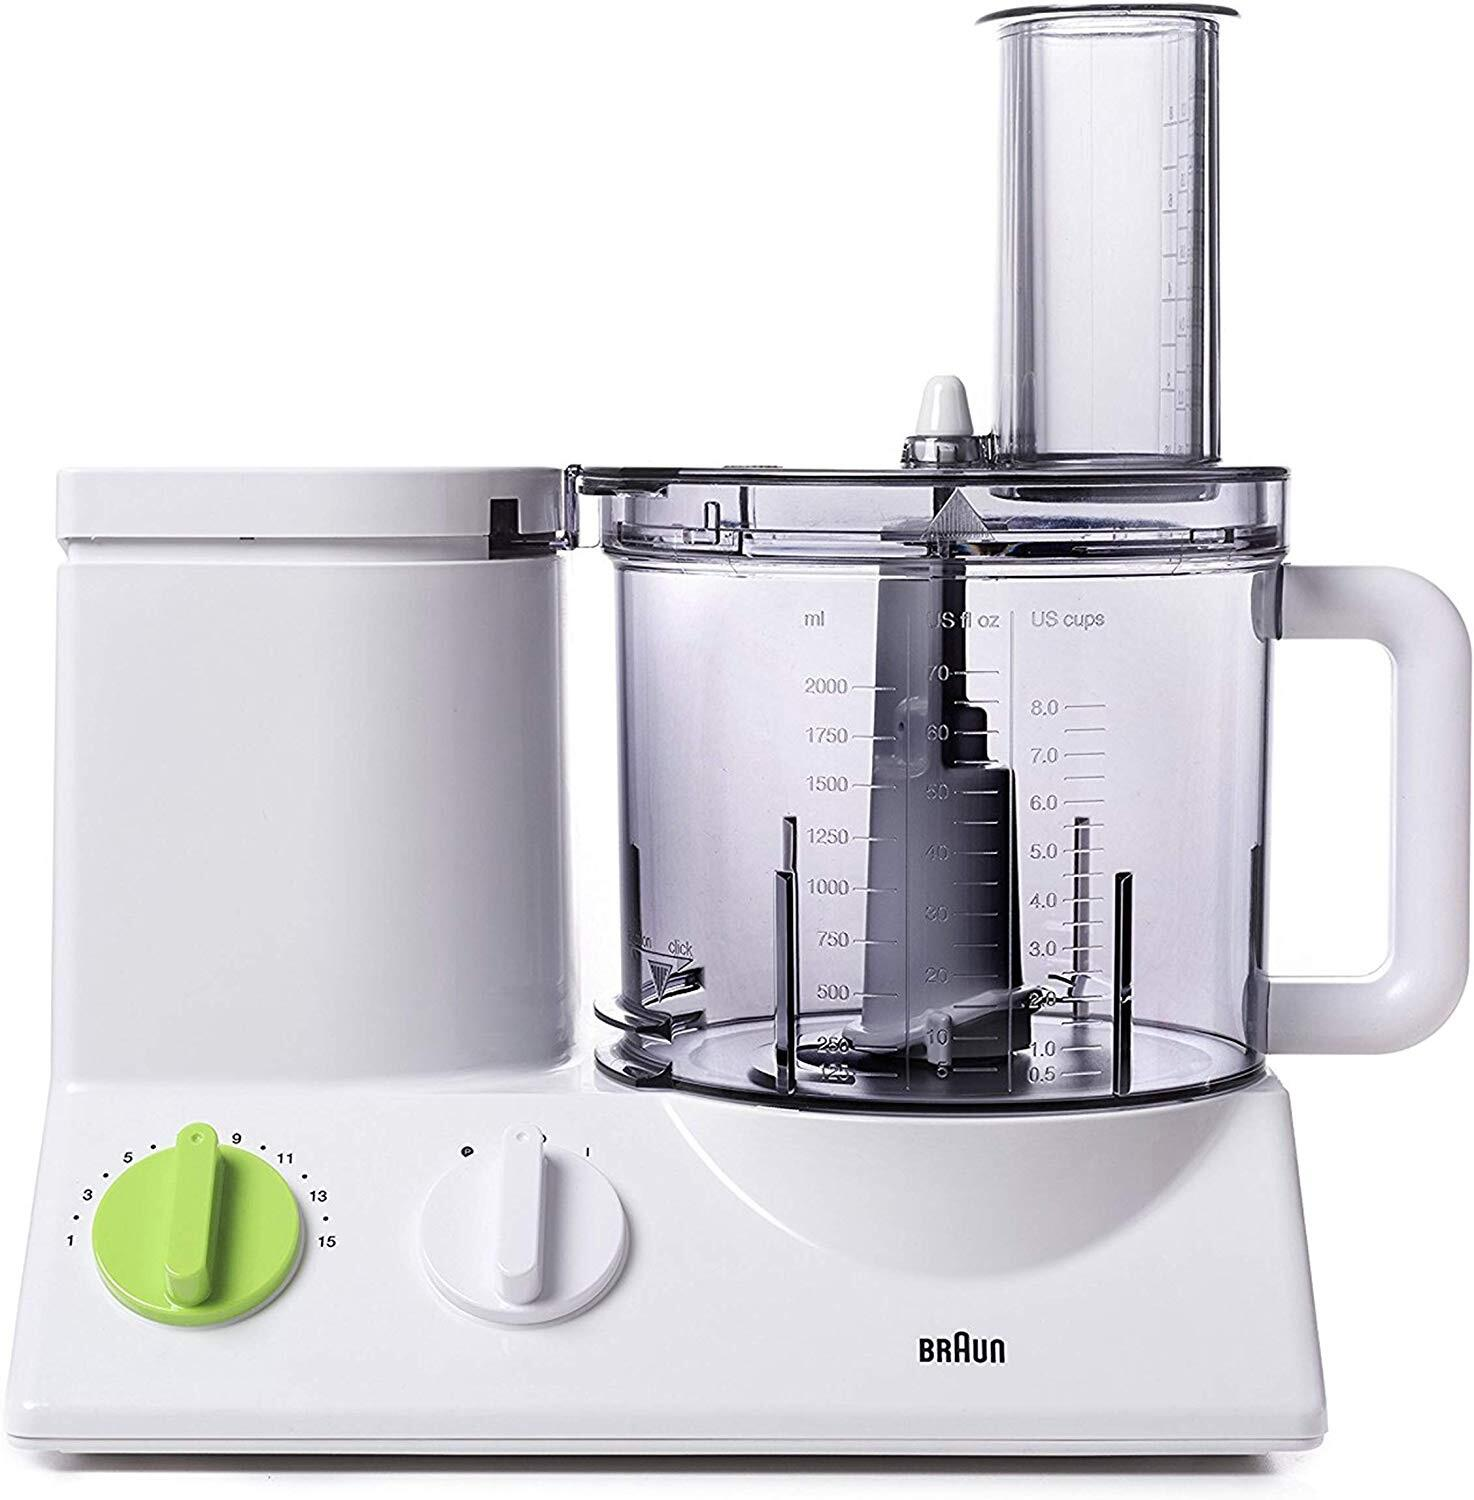 braun-food-processor-amazon